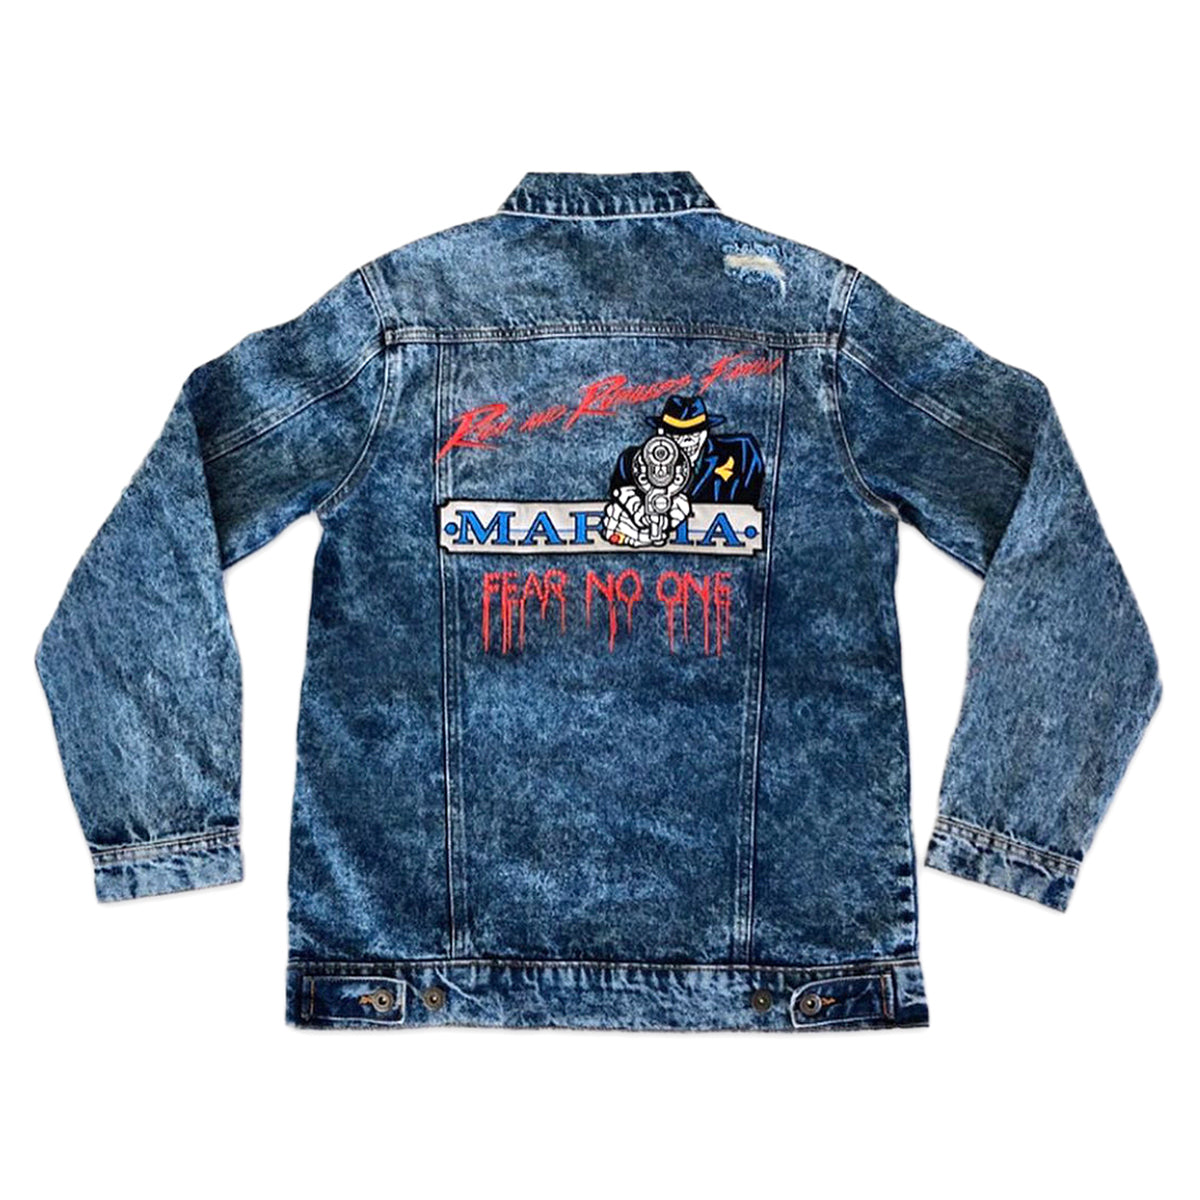 Rich & Ruthless Family Denim Jacket